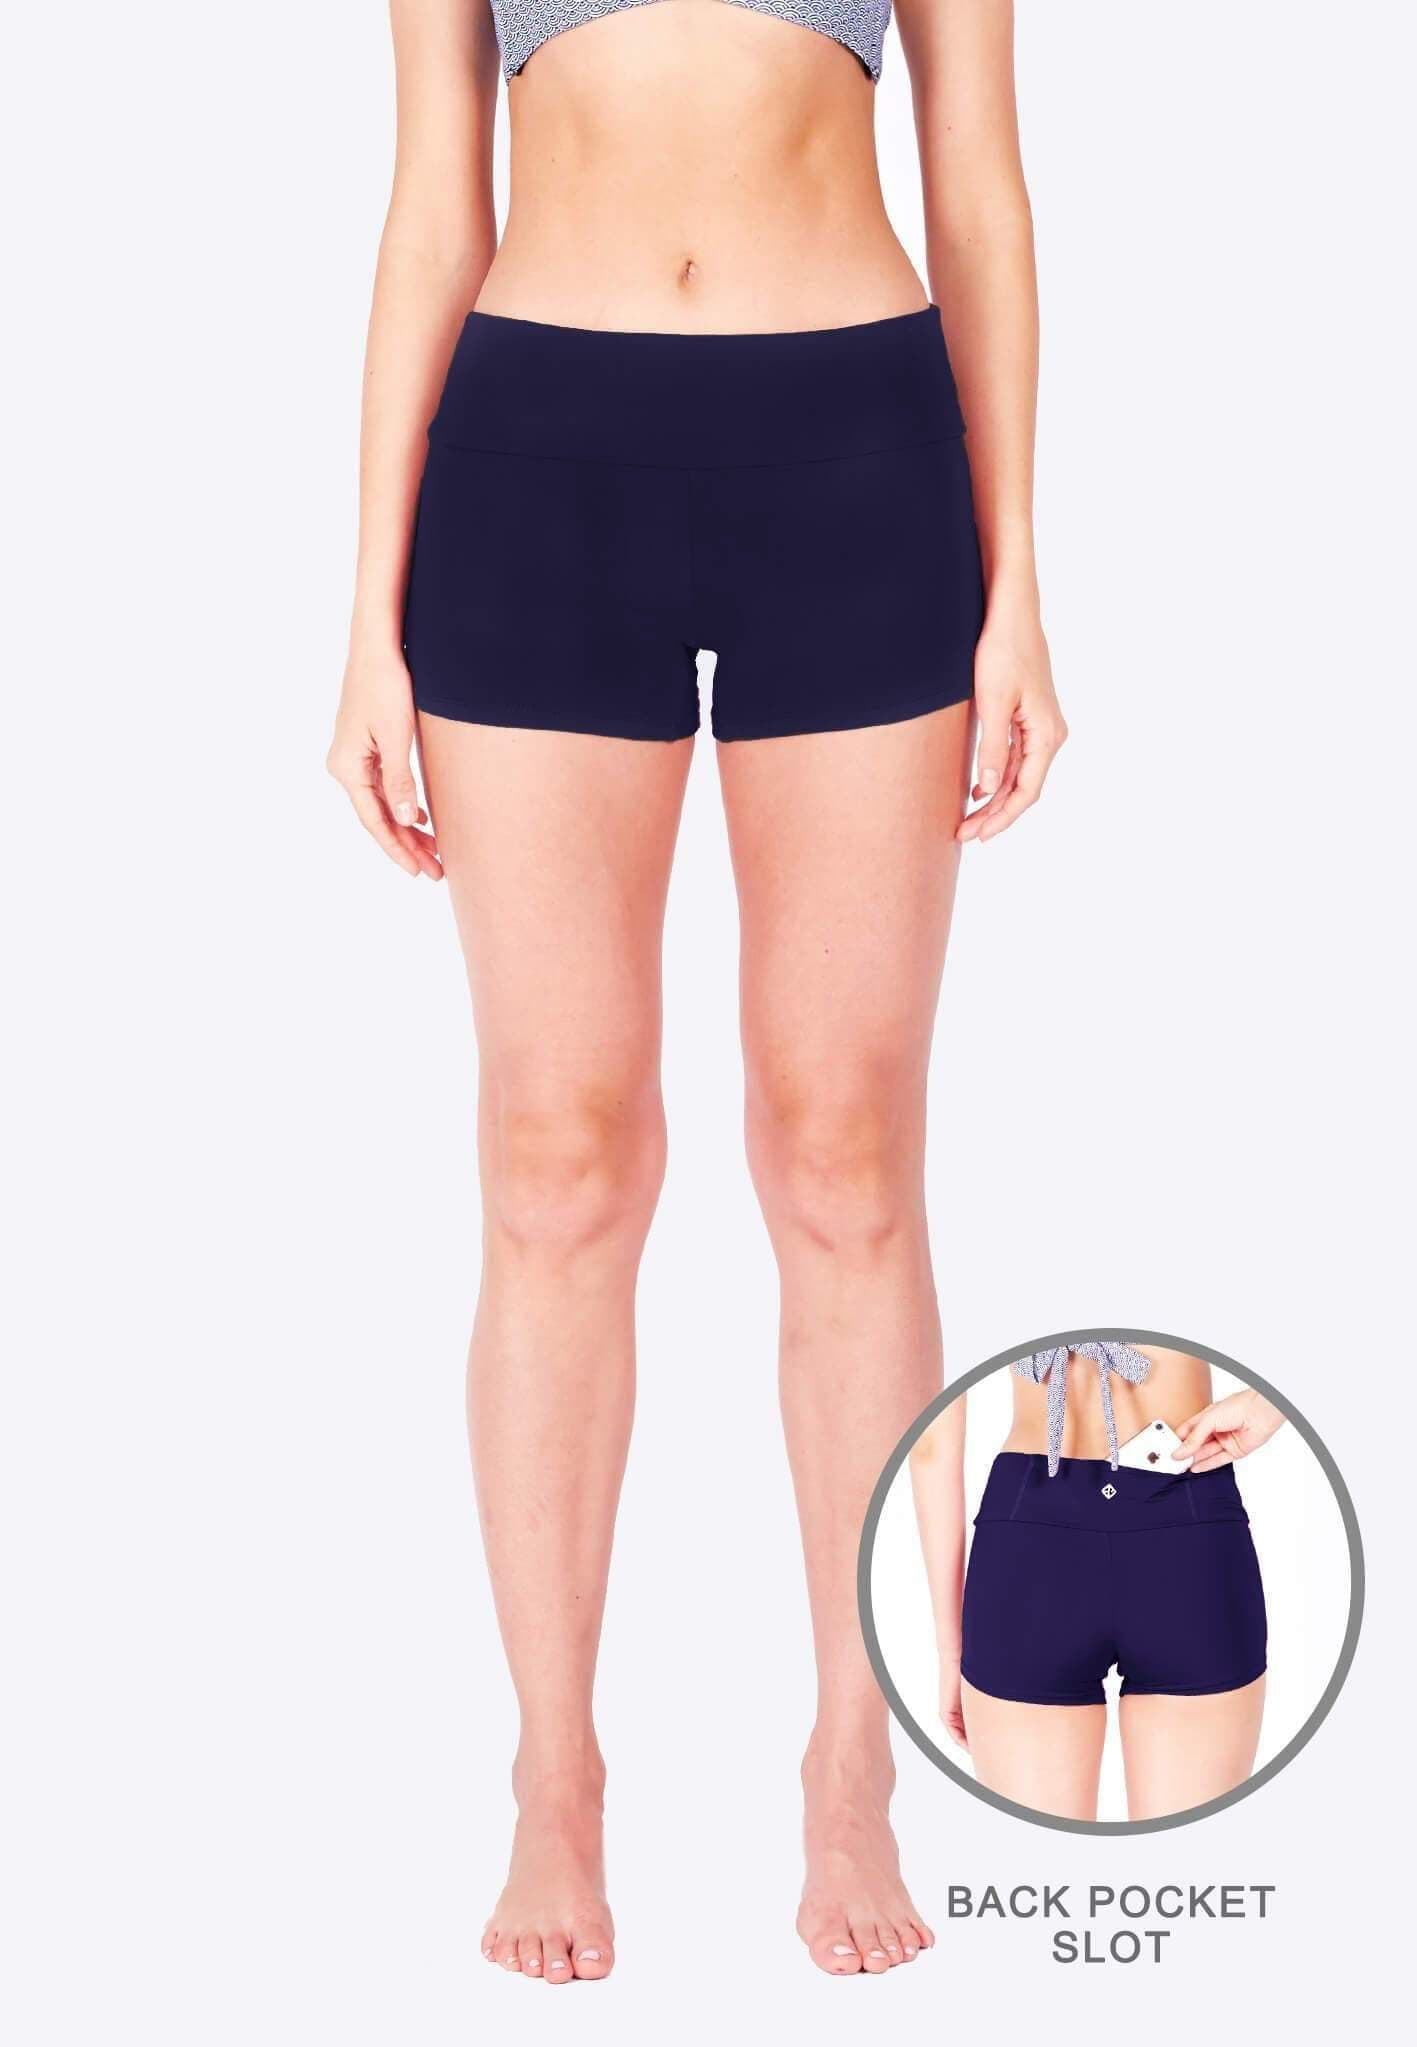 Athleiswim™ Boyshorts (Navy) | XS - 2XL